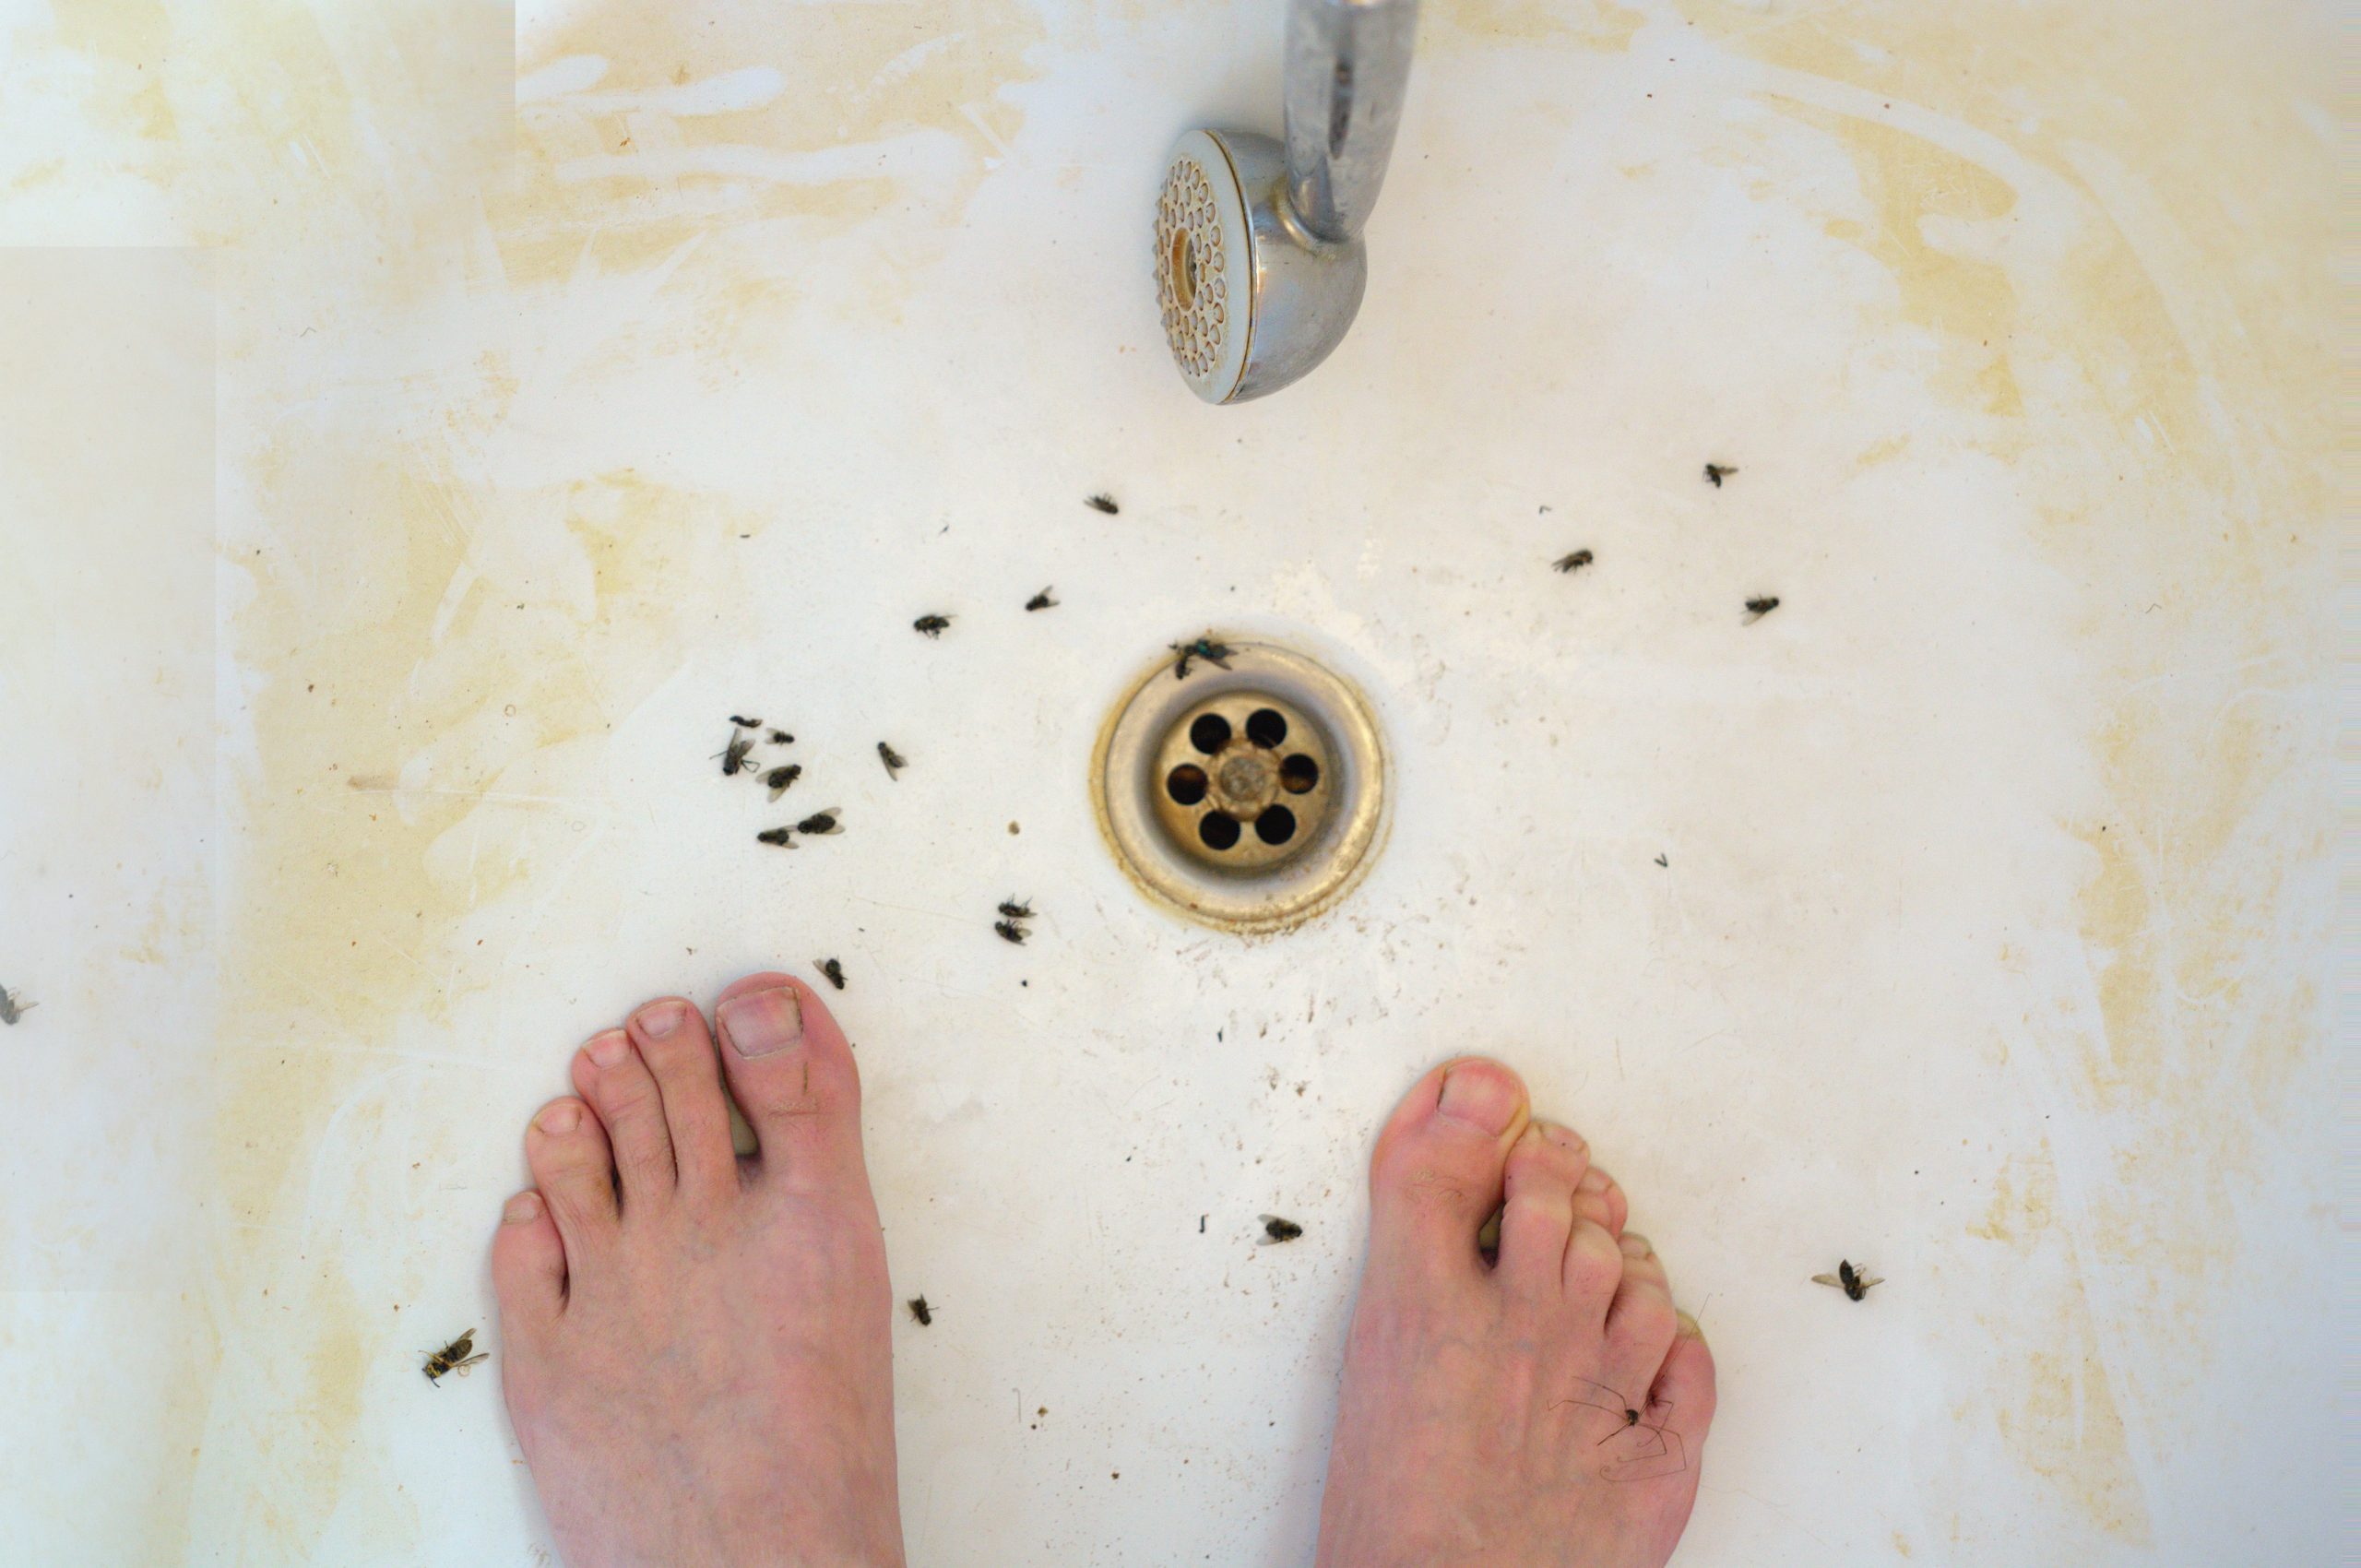 Cleaning 101: Getting Rid of Drain Flies   Pittsburgh   Terry's Plumbing